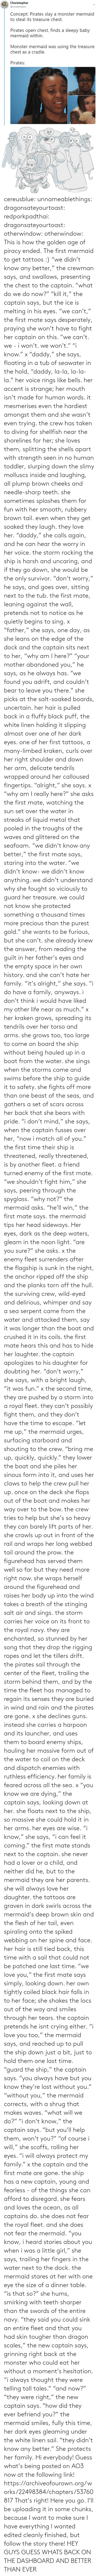 "org: cereusblue: unnameablethings:   dragonsateyourtoast:  redporkpadthai:  dragonsateyourtoast:  otherwindow:  otherwindow: This is how the golden age of piracy ended. The first mermaid to get tattoos :)   ""we didn't know any better,"" the crewman says, and swallows, presenting the chest to the captain. ""what do we do now?"" ""kill it,"" the captain says, but the ice is melting in his eyes. ""we can't,"" the first mate says desperately, praying she won't have to fight her captain on this. ""we can't. we - i won't. we won't."" ""i know."" x ""daddy,"" she says, floating in a tub of seawater in the hold, ""daddy, la-la, la-la-la."" her voice rings like bells. her accent is strange; her mouth isn't made for human words. it mesmerises even the hardiest amongst them and she wasn't even trying. the crew has taken to diving for shellfish near the shorelines for her; she loves them, splitting the shells apart with strength seen in no human toddler, slurping down the slimy molluscs inside and laughing, all plump brown cheeks and needle-sharp teeth. she sometimes splashes them for fun with her smooth, rubbery brown tail. even when they get soaked they laugh. they love her. ""daddy,"" she calls again, and he can hear the worry in her voice. the storm rocking the ship is harsh and uncaring, and if they go down, she would be the only survivor. ""don't worry,"" he says, and goes over, sitting next to the tub. the first mate, leaning against the wall, pretends not to notice as he quietly begins to sing. x ""father,"" she says, one day, as she leans on the edge of the dock and the captain sits next to her, ""why am I here?"" ""your mother abandoned you,"" he says, as he always has. ""we found you adrift, and couldn't bear to leave you there."" she picks at the salt-soaked boards, uncertain. her hair is pulled back in a fluffy black puff, the white linen holding it slipping almost over one of her dark eyes. one of her first tattoos, a many-limbed kraken, curls over her right shoulder and down her arm, delicate tendrils wrapped around her calloused fingertips. ""alright,"" she says. x ""why am I really here?"" she asks the first mate, watching the sun set over the water in streaks of liquid metal that pooled in the troughs of the waves and glittered on the seafoam. ""we didn't know any better,"" the first mate says, staring into the water. ""we didn't know- we didn't know anything. we didn't understand why she fought so viciously to guard her treasure. we could not know she protected something a thousand times more precious than the purest gold."" she wants to be furious, but she can't. she already knew the answer, from reading the guilt in her father's eyes and the empty space in her own history. and she can't hate her family. ""it's alright,"" she says. ""i do have a family, anyways. i don't think i would have liked my other life near as much."" x her kraken grows, spreading its tendrils over her torso and arms. she grows too, too large to come on board the ship without being hauled up in a boat from the water. she sings when the storms come and swims before the ship to guide it to safety. she fights off more than one beast of the seas, and gathers a set of scars across her back that she bears with pride. ""i don't mind,"" she says, when the captain fusses over her, ""now i match all of you."" the first time their ship is threatened, really threatened, is by another fleet. a friend turned enemy of the first mate. ""we shouldn't fight him,"" she says, peering through the spyglass. ""why not?"" the mermaid asks. ""he'll win,"" the first mate says. the mermaid tips her head sideways. Her eyes, dark as the deep waters, gleam in the noon light. ""are you sure?"" she asks. x the enemy fleet surrenders after the flagship is sunk in the night, the anchor ripped off the ship and the planks torn off the hull. the surviving crew, wild-eyed and delirious, whimper and say a sea serpent came from the water and attacked them, say it was longer than the boat and crushed it in its coils. the first mate hears this and has to hide her laughter. the captain apologizes to his daughter for doubting her. ""don't worry,"" she says, with a bright laugh, ""it was fun."" x the second time, they are pushed by a storm into a royal fleet. they can't possibly fight them, and they don't have the time to escape. ""let me up,"" the mermaid urges, surfacing starboard and shouting to the crew. ""bring me up, quickly, quickly."" they lower the boat and she piles her sinous form into it, and uses her claws to help the crew pull her up. once on the deck she flops out of the boat and makes her way over to the bow. the crew tries to help but she's so heavy they can barely lift parts of her. she crawls up out in front of the rail and wraps her long webbed tail around the prow. the figurehead has served them well so far but they need more right now. she wraps herself around the figurehead and raises her body up into the wind takes a breath of the stinging salt air and sings. the storm carries her voice on its front to the royal navy. they are enchanted, so stunned by her song that they drop the rigging ropes and let the tillers drift. the pirates sail through the center of the fleet, trailing the storm behind them, and by the time the fleet has managed to regain its senses they are buried in wind and rain and the pirates are gone. x she declines guns. instead she carries a harpoon and its launcher, and uses them to board enemy ships, hauling her massive form out of the water to coil on the deck and dispatch enemies with ruthless efficiency. her family is feared across all the sea. x ""you know we are dying,"" the captain says, looking down at her. she floats next to the ship, so massive she could hold it in her arms. her eyes are wise. ""i know,"" she says, ""i can feel it coming."" the first mate stands next to the captain. she never had a lover or a child, and neither did he, but to the mermaid they are her parents. she will always love her daughter. the tattoos are graven in dark swirls across the mermaid's deep brown skin and the flesh of her tail, even spiraling onto the spiked webbing on her spine and face. her hair is still tied back, this time with a sail that could not be patched one last time.  ""we love you,"" the first mate says simply, looking down. her own tightly coiled black hair falls in to her face; she shakes the locs out of the way and smiles through her tears. the captain pretends he isnt crying either. ""i love you too,"" the mermaid says, and reached up to pull the ship down just a bit, just to hold them one last time. ""guard the ship,"" the captain says. ""you always have but you know they're lost without you."" ""without you,"" the mermaid corrects, with a shrug that makes waves. ""what will we do?"" ""i don't know,"" the captain says. ""but you'll help them, won't you?"" ""of course i will,"" she scoffs, rolling her eyes. ""i will always protect my family."" x the captain and the first mate are gone. the ship has a new captain, young and fearless - of the things she can afford to disregard. she fears and loves the ocean, as all captains do. she does not fear the royal fleet. and she does not fear the mermaid. ""you know, i heard stories about you when i was a little girl,"" she says, trailing her fingers in the water next to the dock. the mermaid stares at her with one eye the size of a dinner table. ""is that so?"" she hums, smirking with teeth sharper than the swords of the entire navy. ""they said you could sink an entire fleet and that you had skin tougher than dragon scales,"" the new captain says, grinning right back at the monster who could eat her without a moment's hesitation. ""i always thought they were telling tall tales."" ""and now?"" ""they were right,"" the new captain says. ""how did they ever befriend you?"" the mermaid smiles, fully this time, her dark eyes gleaming under the white linen sail. ""they didn't know any better.""  She protects her family.  Hi everybody! Guess what's being posted on AO3 now at the following link! https://archiveofourown.org/works/22498384/chapters/53760817 That's right! Here you go. I'll be uploading it in some chunks, because I want to make sure I have everything I wanted edited cleanly finished, but follow the story there!     HEY GUYS GUESS WHATS BACK ON THE DASHBOARD AND BETTER THAN EVER"